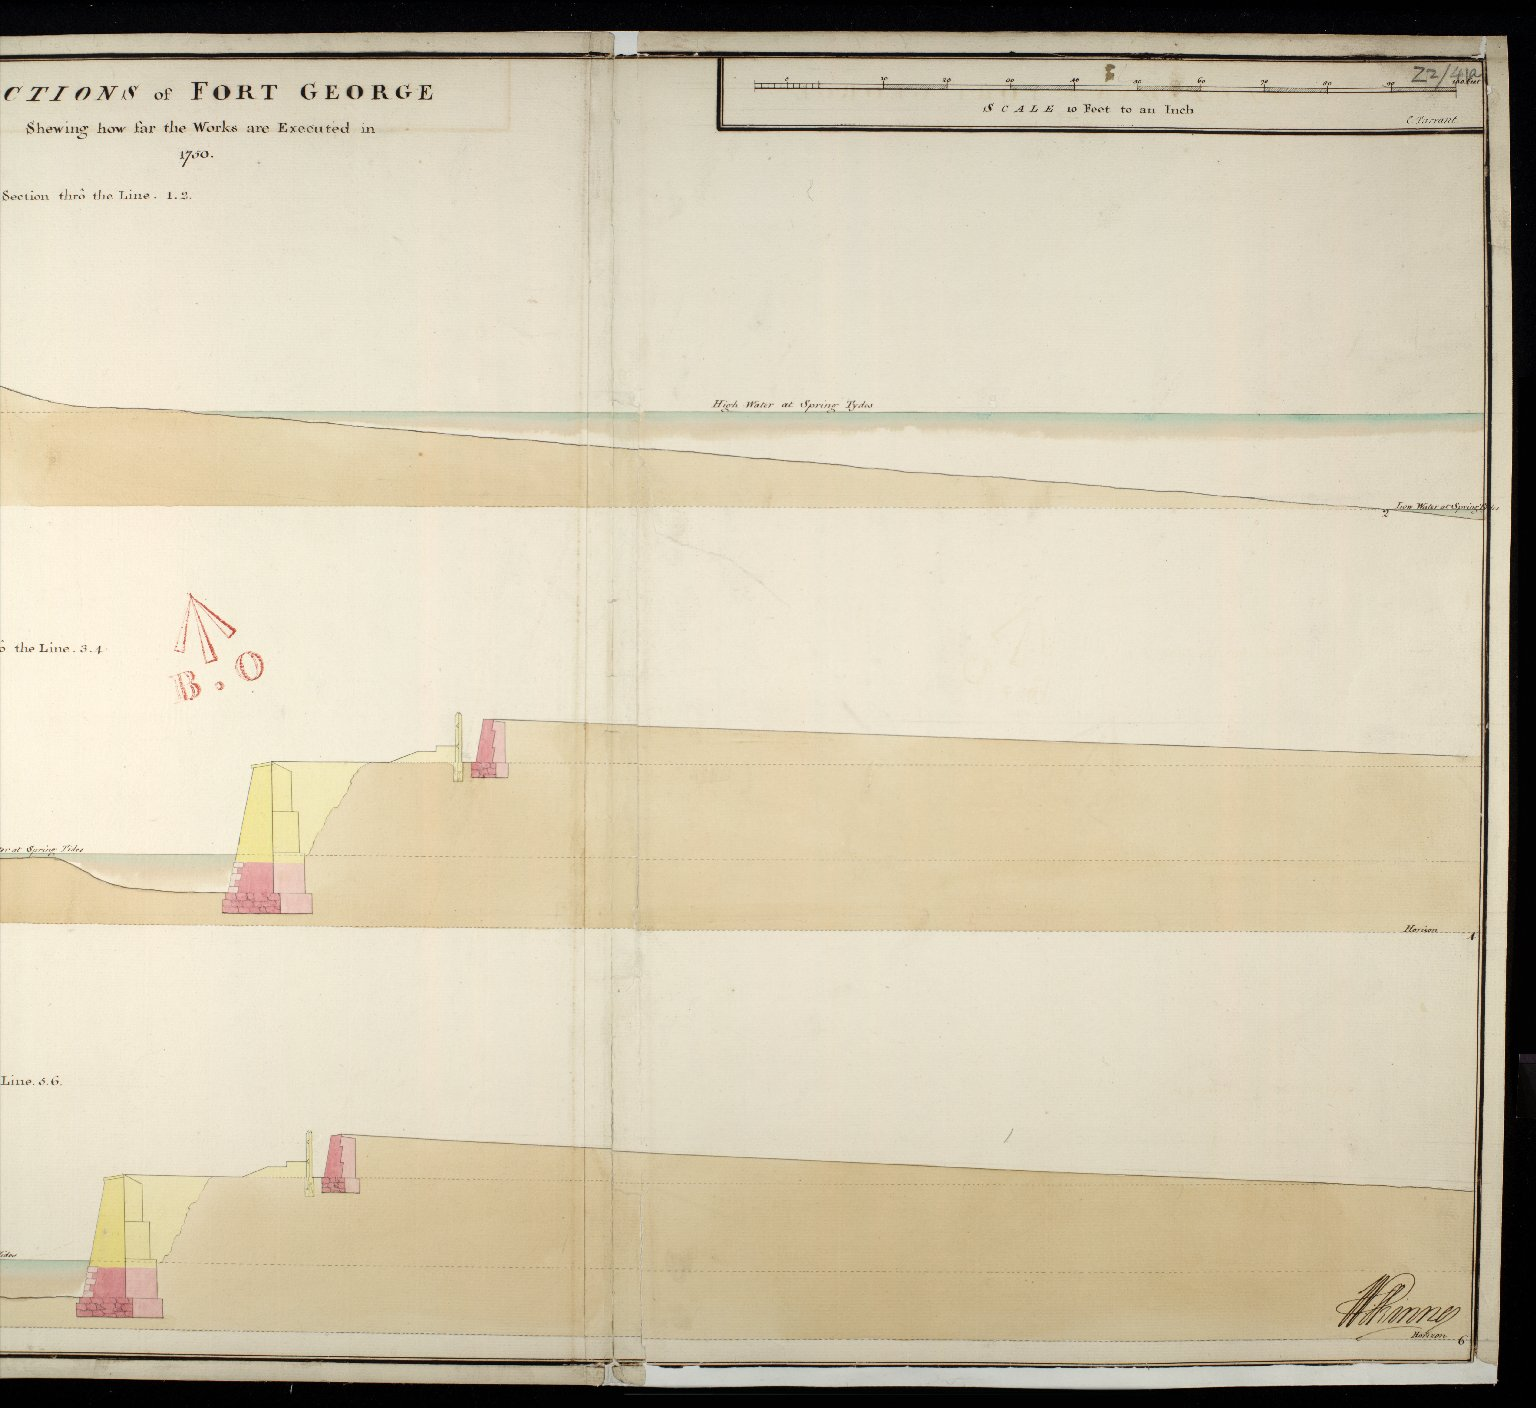 Sections of Fort George shewing how far the works are executed in 1750 : section thro' the line 1.2; section thro' the line 3.4; section thro' the line 5.6 [2 of 2]